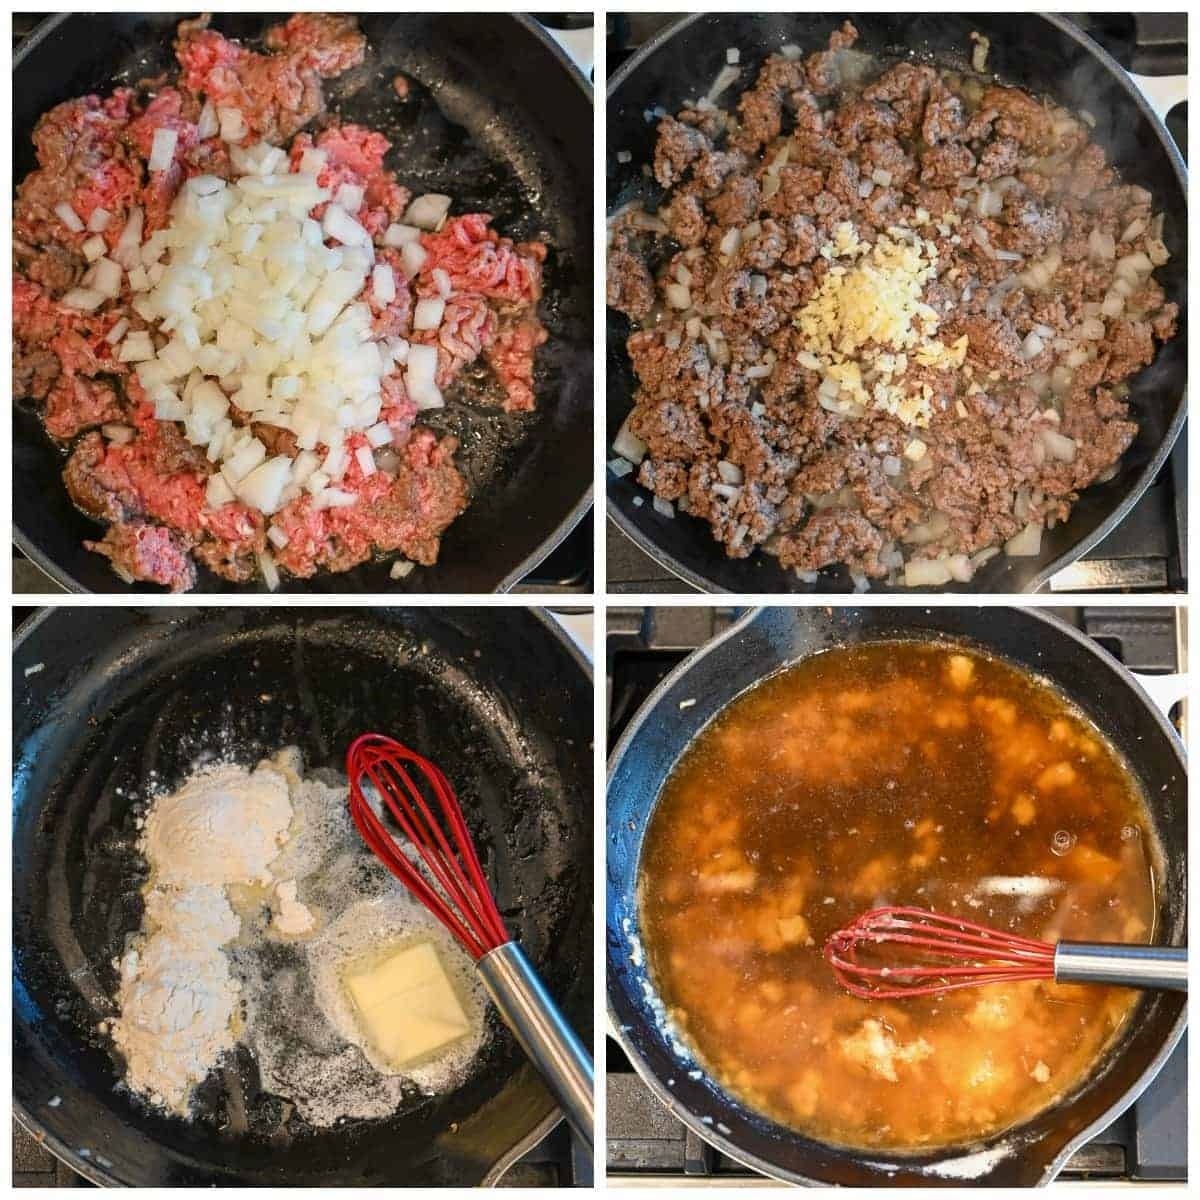 Four process photos. First one, raw ground beef placed in a hot cast iron skillet with raw diced onions. Second one,cooked ground beef with garlic. Third one, beef removed and butter and flour being whisked together. Fourth one, beef stock being whisked in.